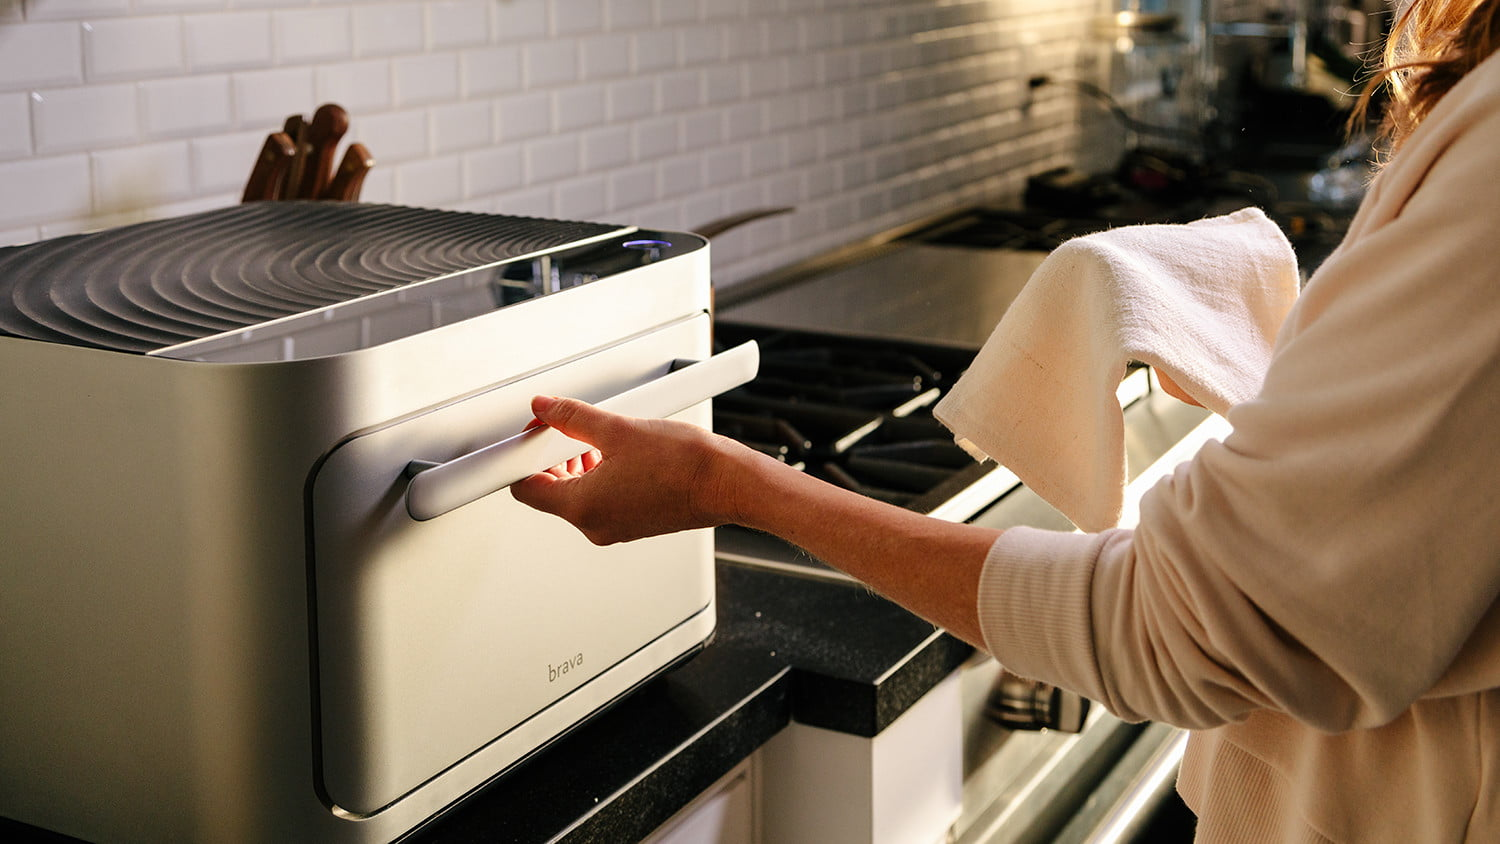 The Brava Oven uses light – and seemingly magic – to cook. It changes everything.